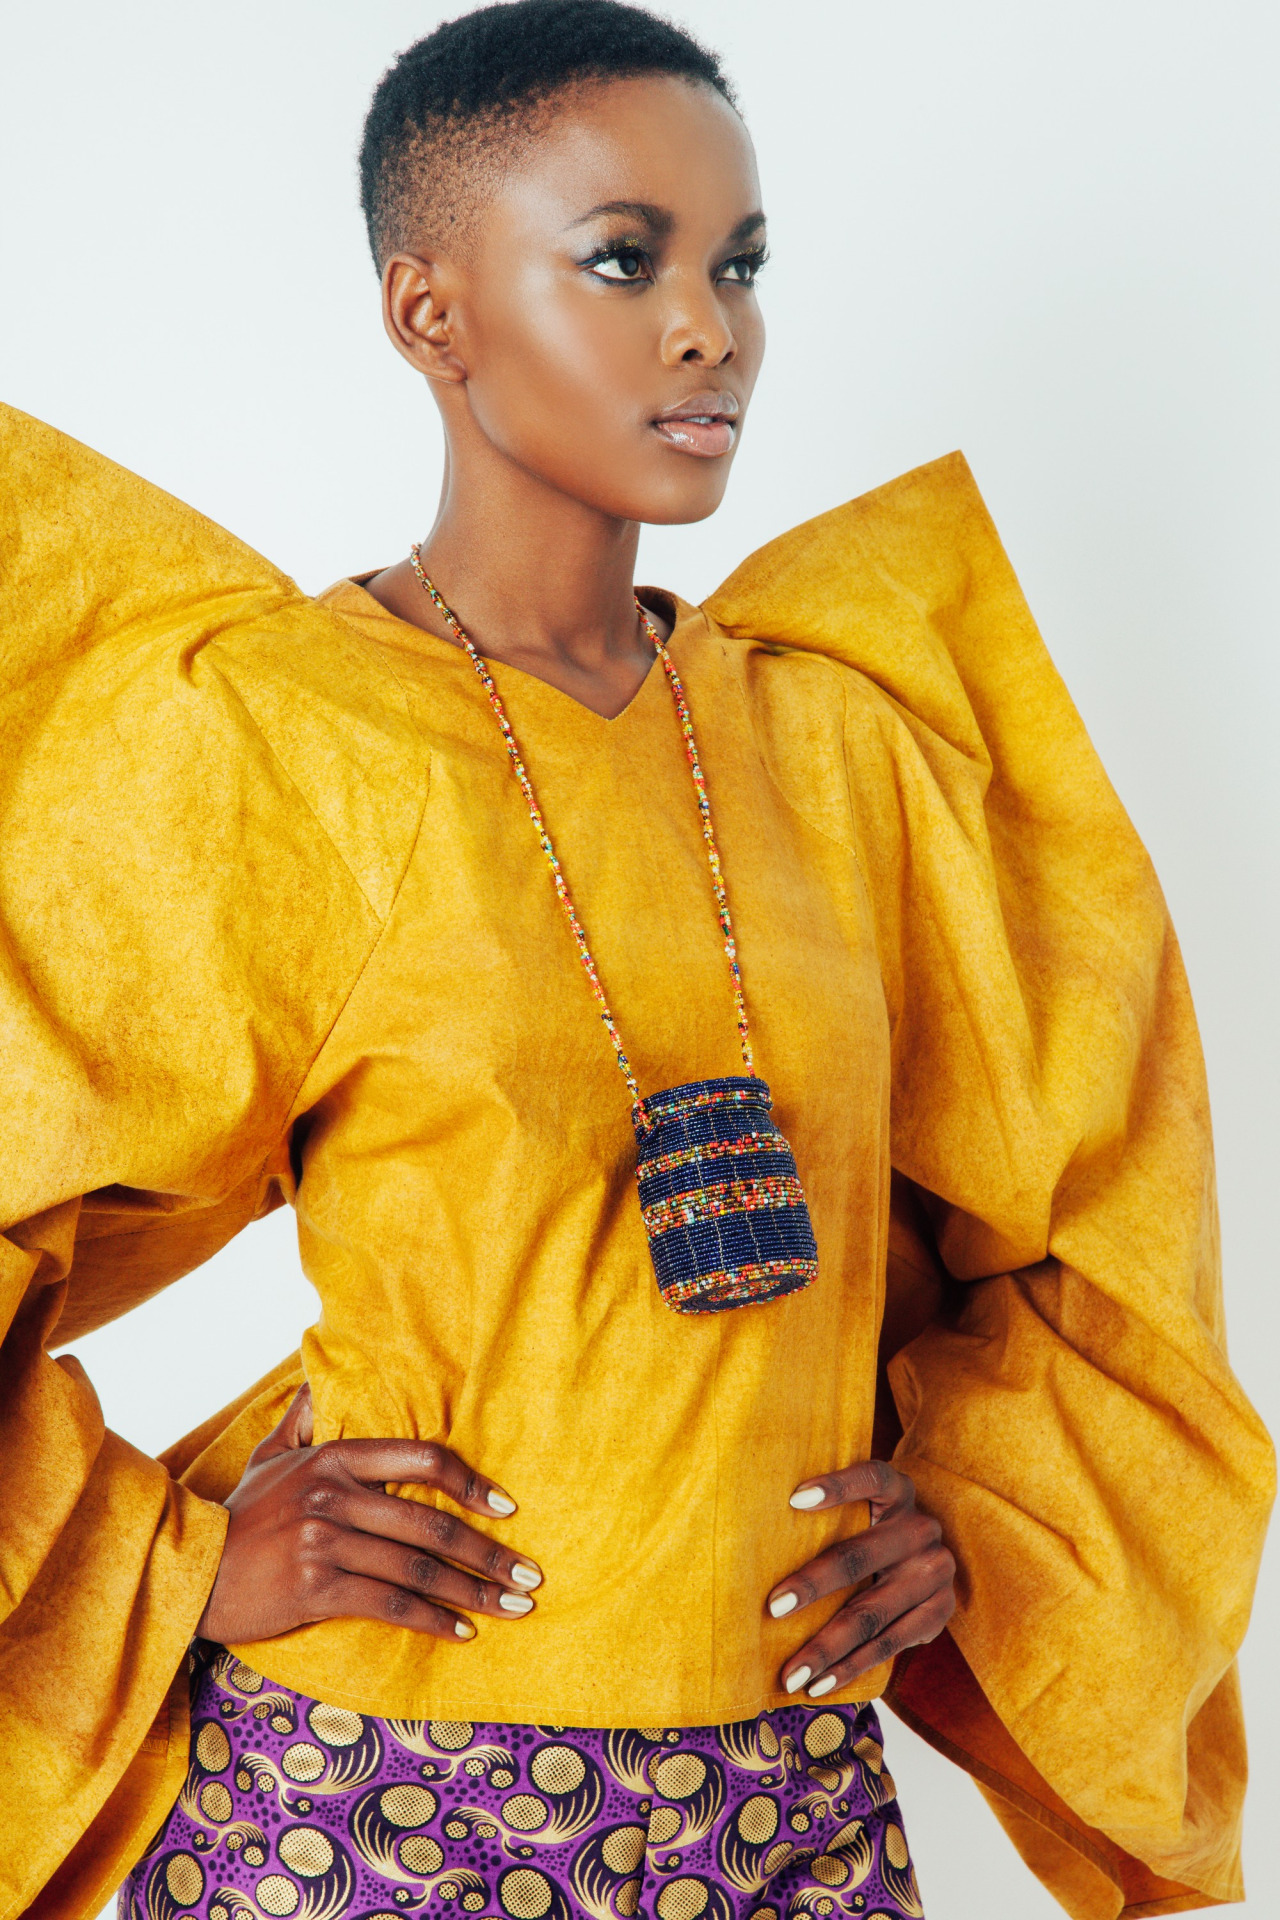 Flaviana Matata nice african fashion style, necklace and short natural hairstyle